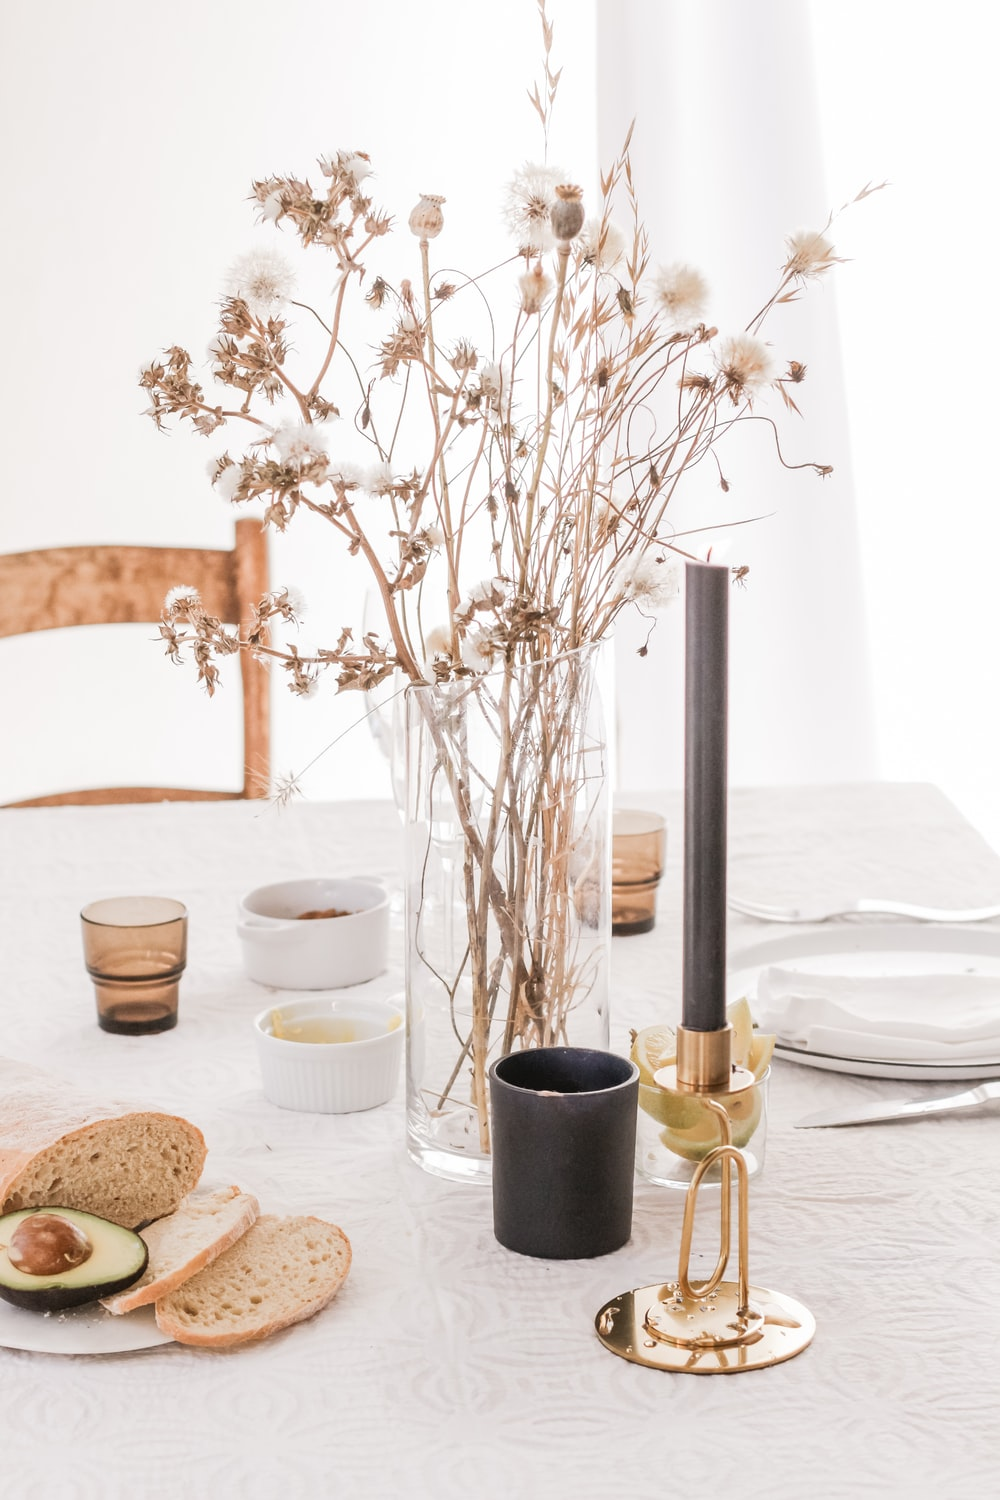 bread and flower placed on table